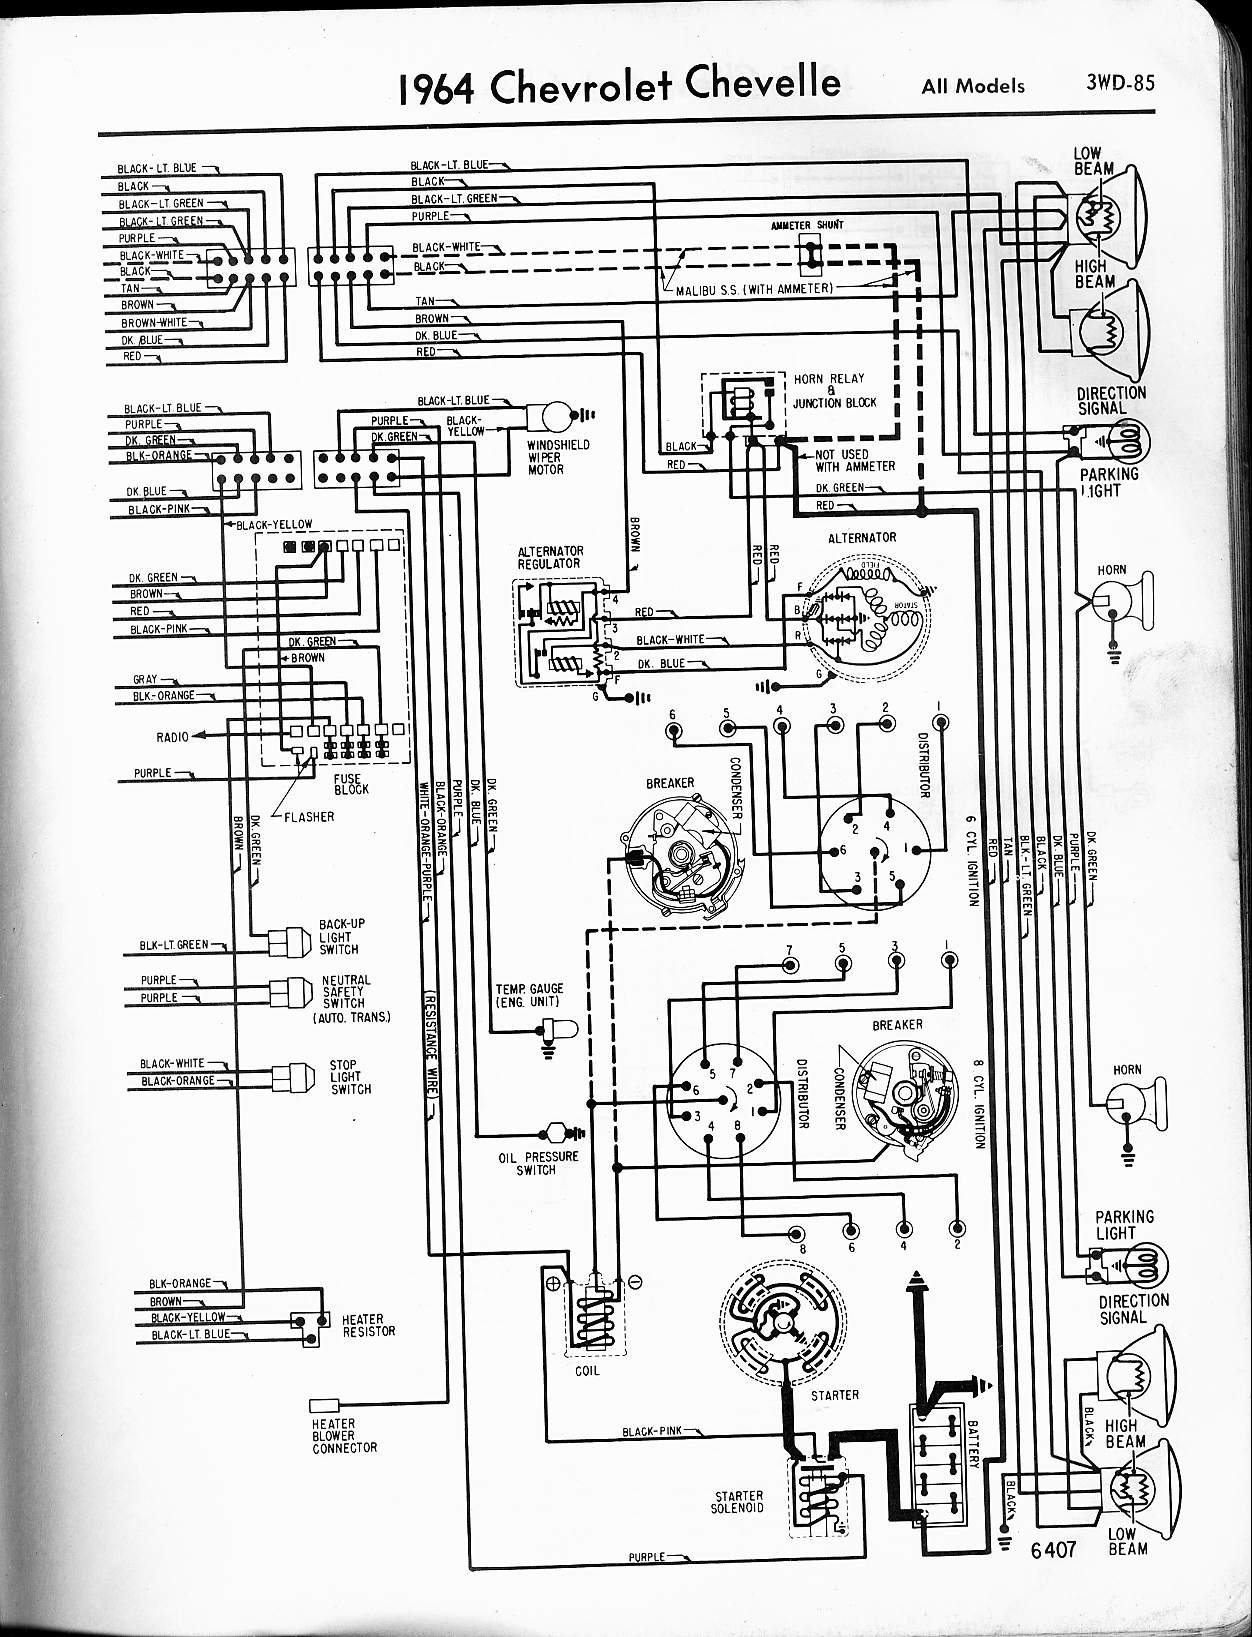 Chevy Diagrams 1964 Lincoln Continental Fuse Box Chevelle Wiring Diagram Figure A B